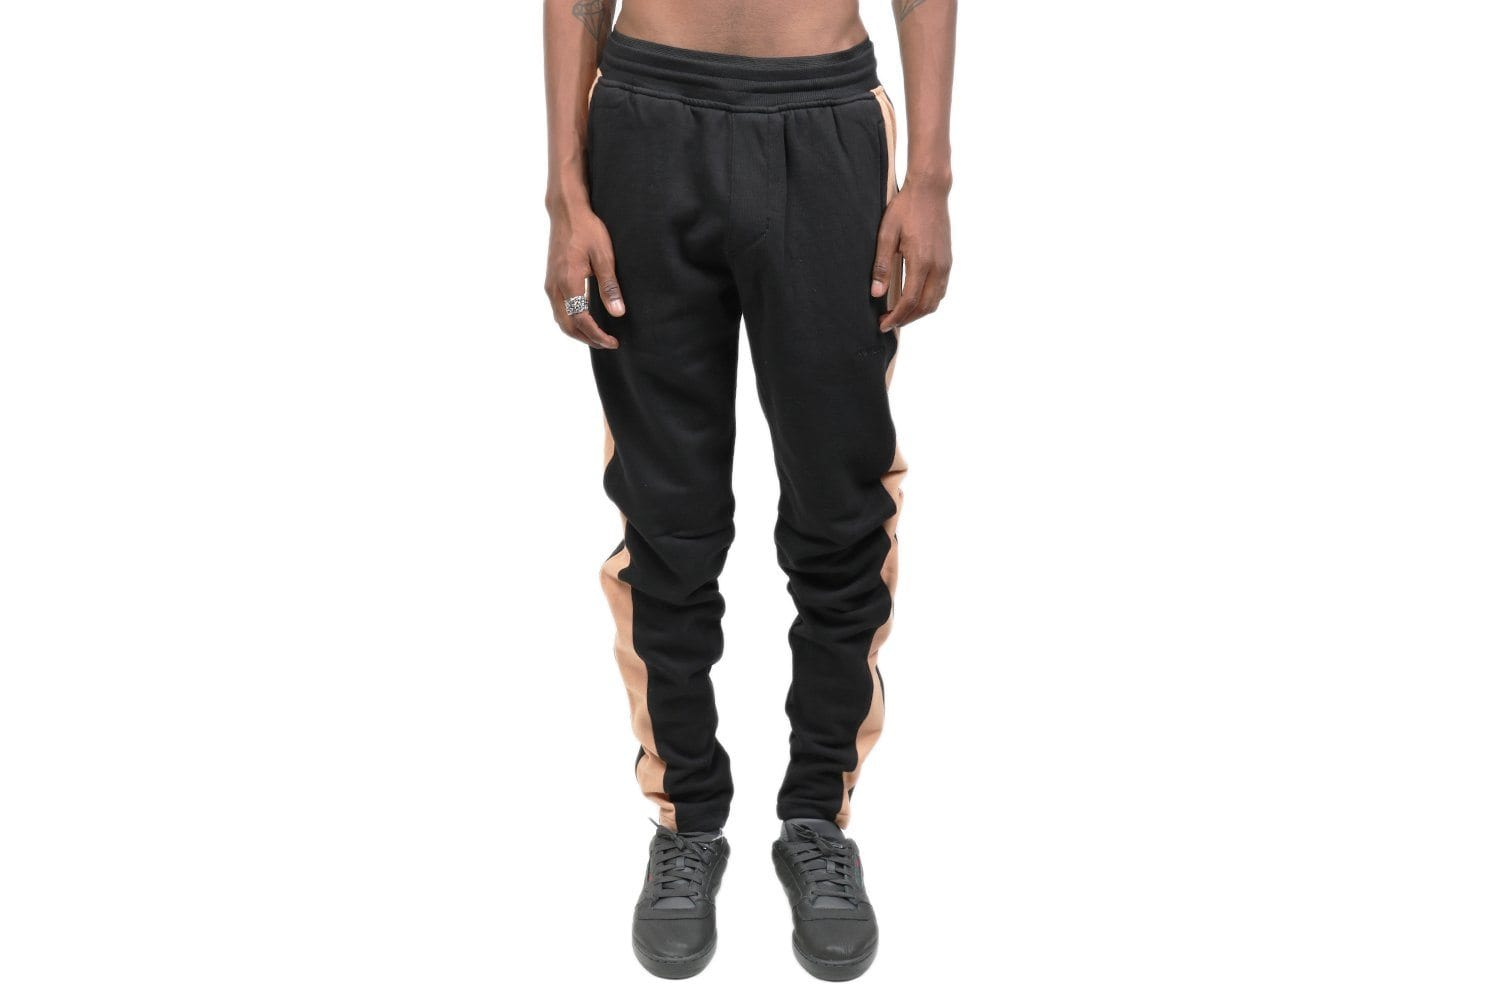 JUMPSHOT TRACKPANT 701-FT MENS SOFTGOODS ZANEROBE BLACK/BISCUIT 30